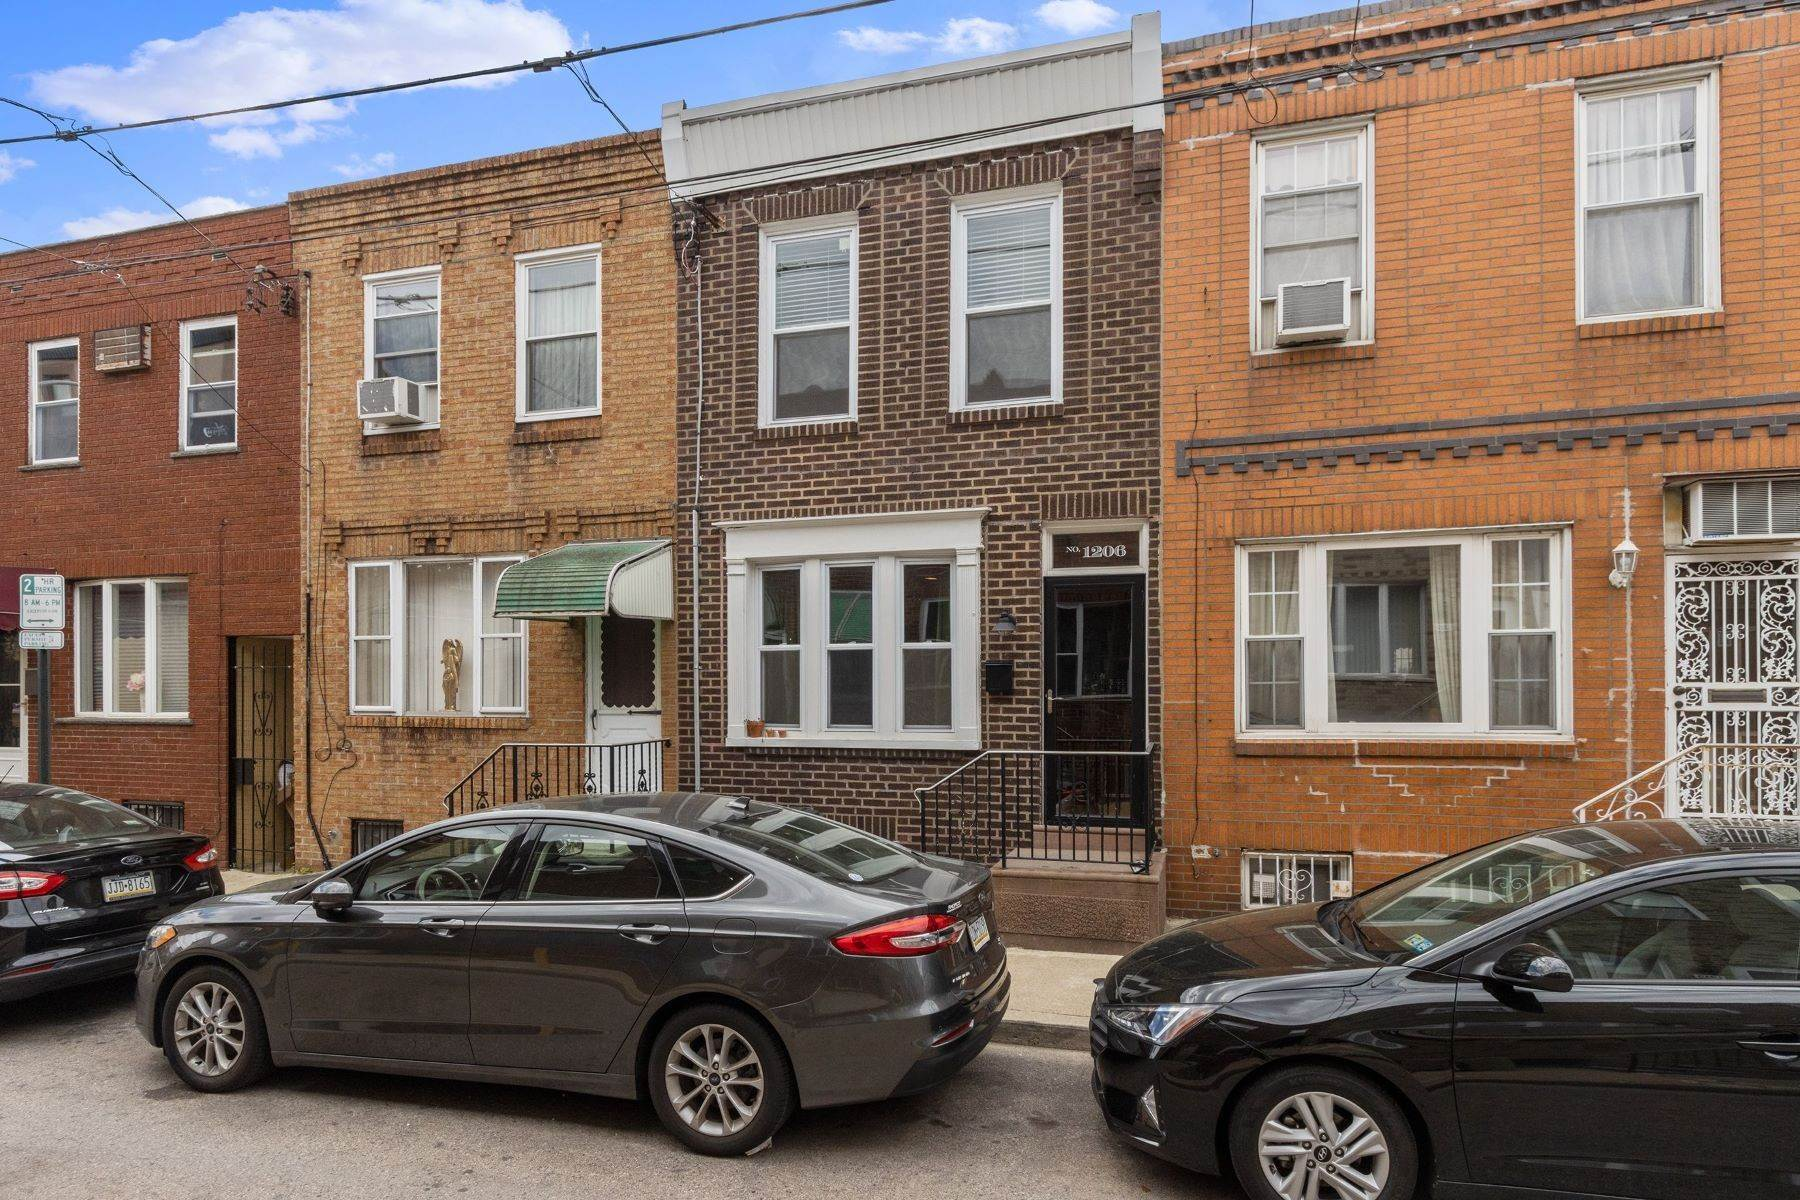 townhouses for Sale at 1206 Emily Street, Philadelphia, PA 19148 1206 Emily Street Philadelphia, Pennsylvania 19148 United States